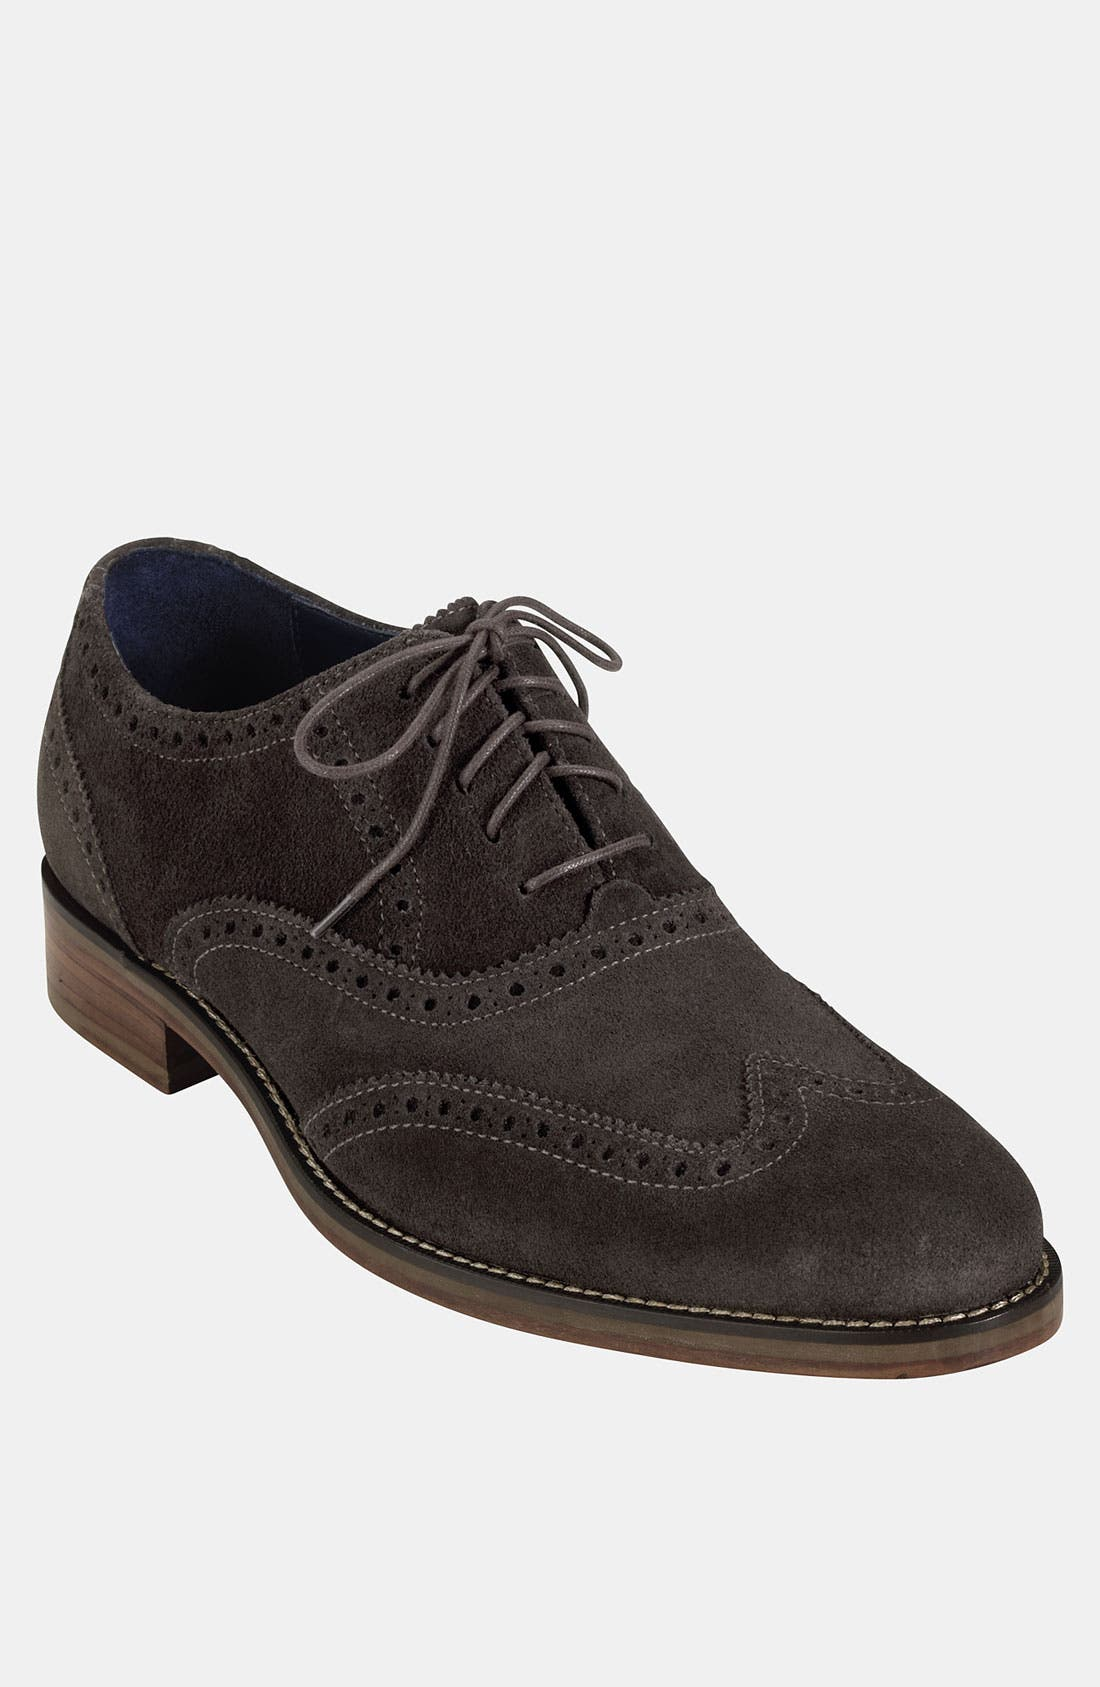 Main Image - Cole Haan 'Air Madison' Wingtip